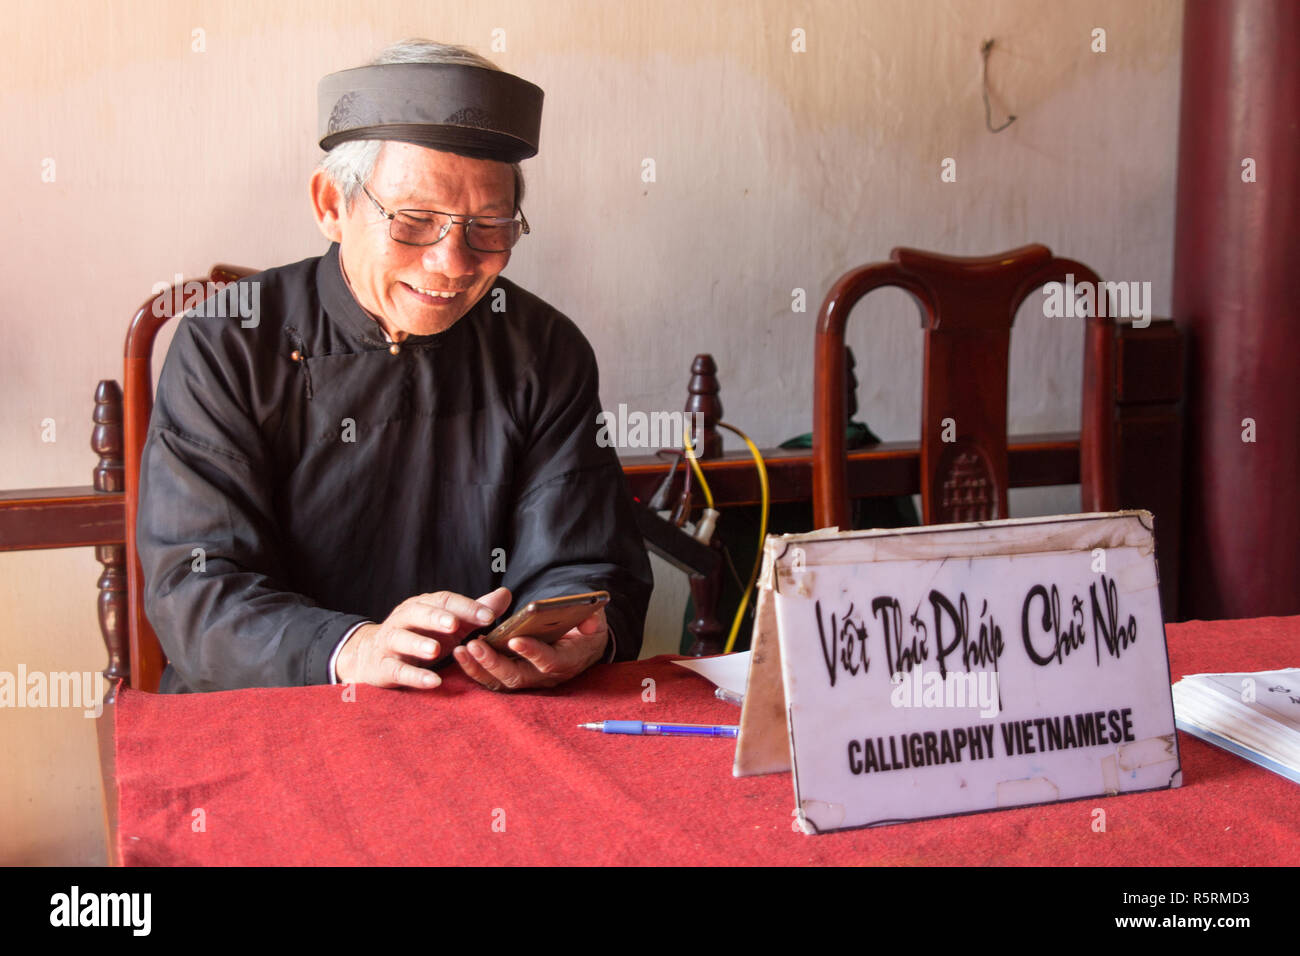 Hanoi, Vietnam - CIRCA October 2015: calligrapher in Hanoi, Vietnam offers his services and uses mobile phone at the same time. - Stock Image